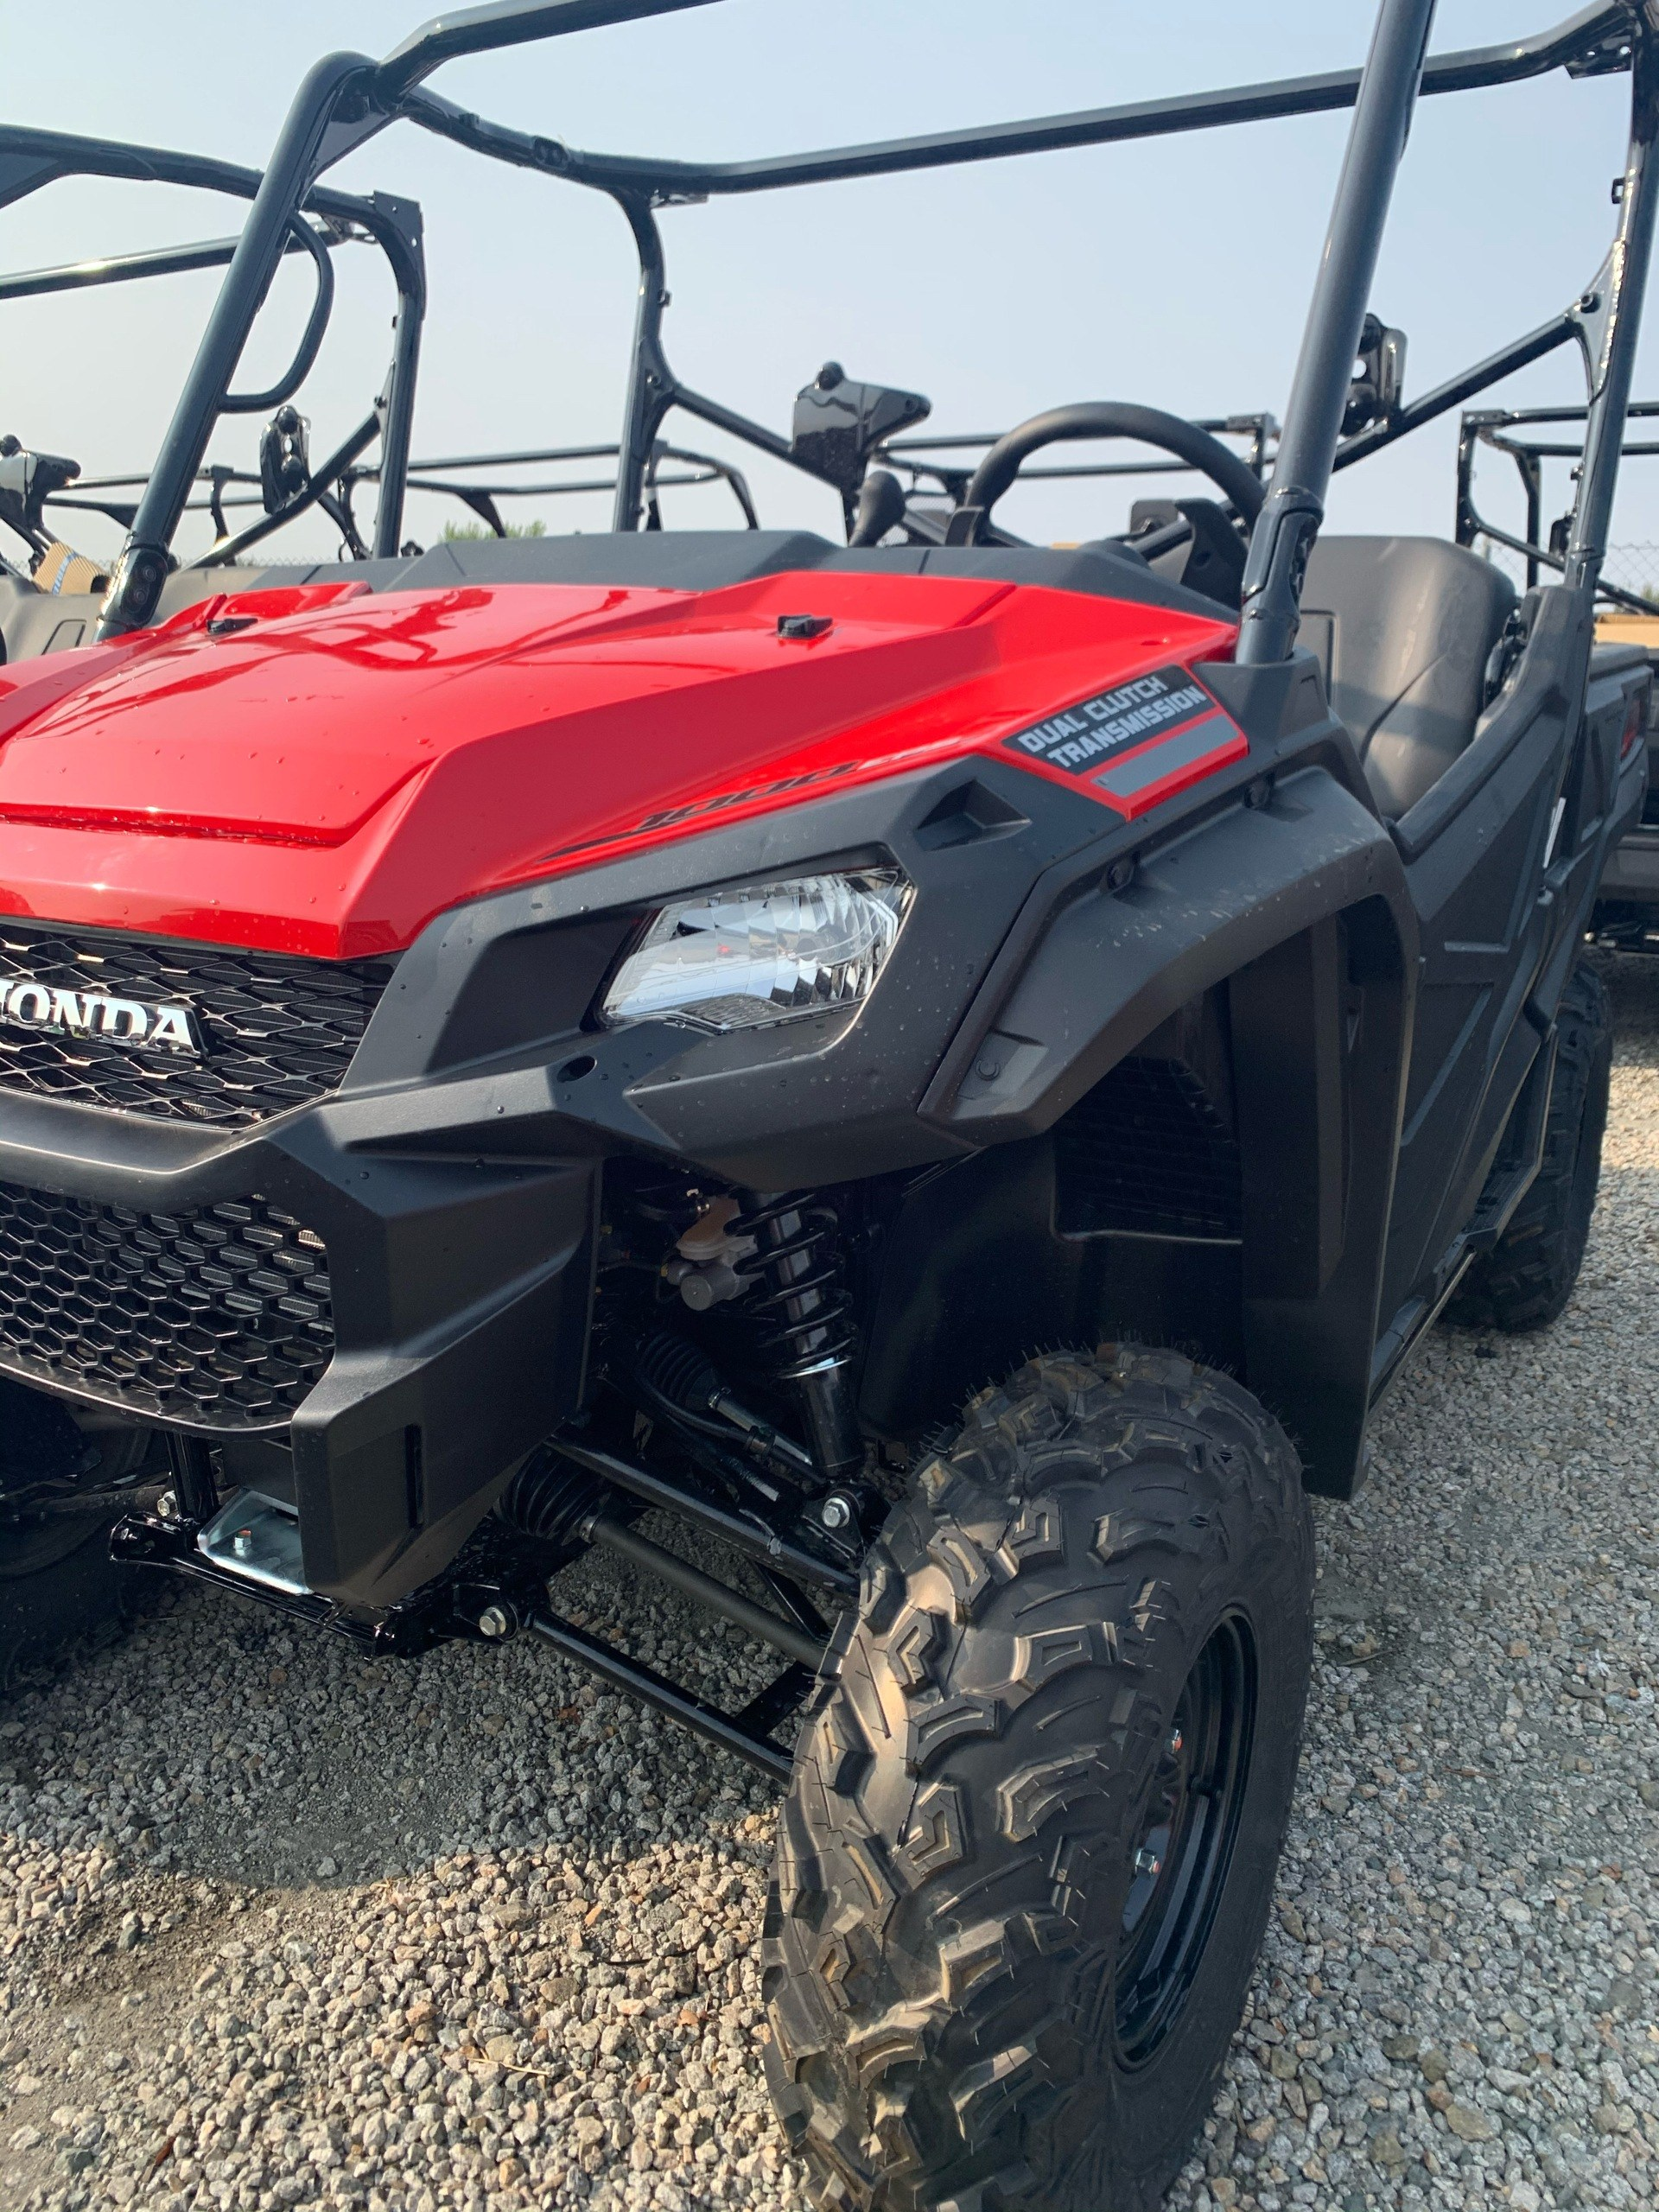 2021 Honda Pioneer 1000 in Paso Robles, California - Photo 2